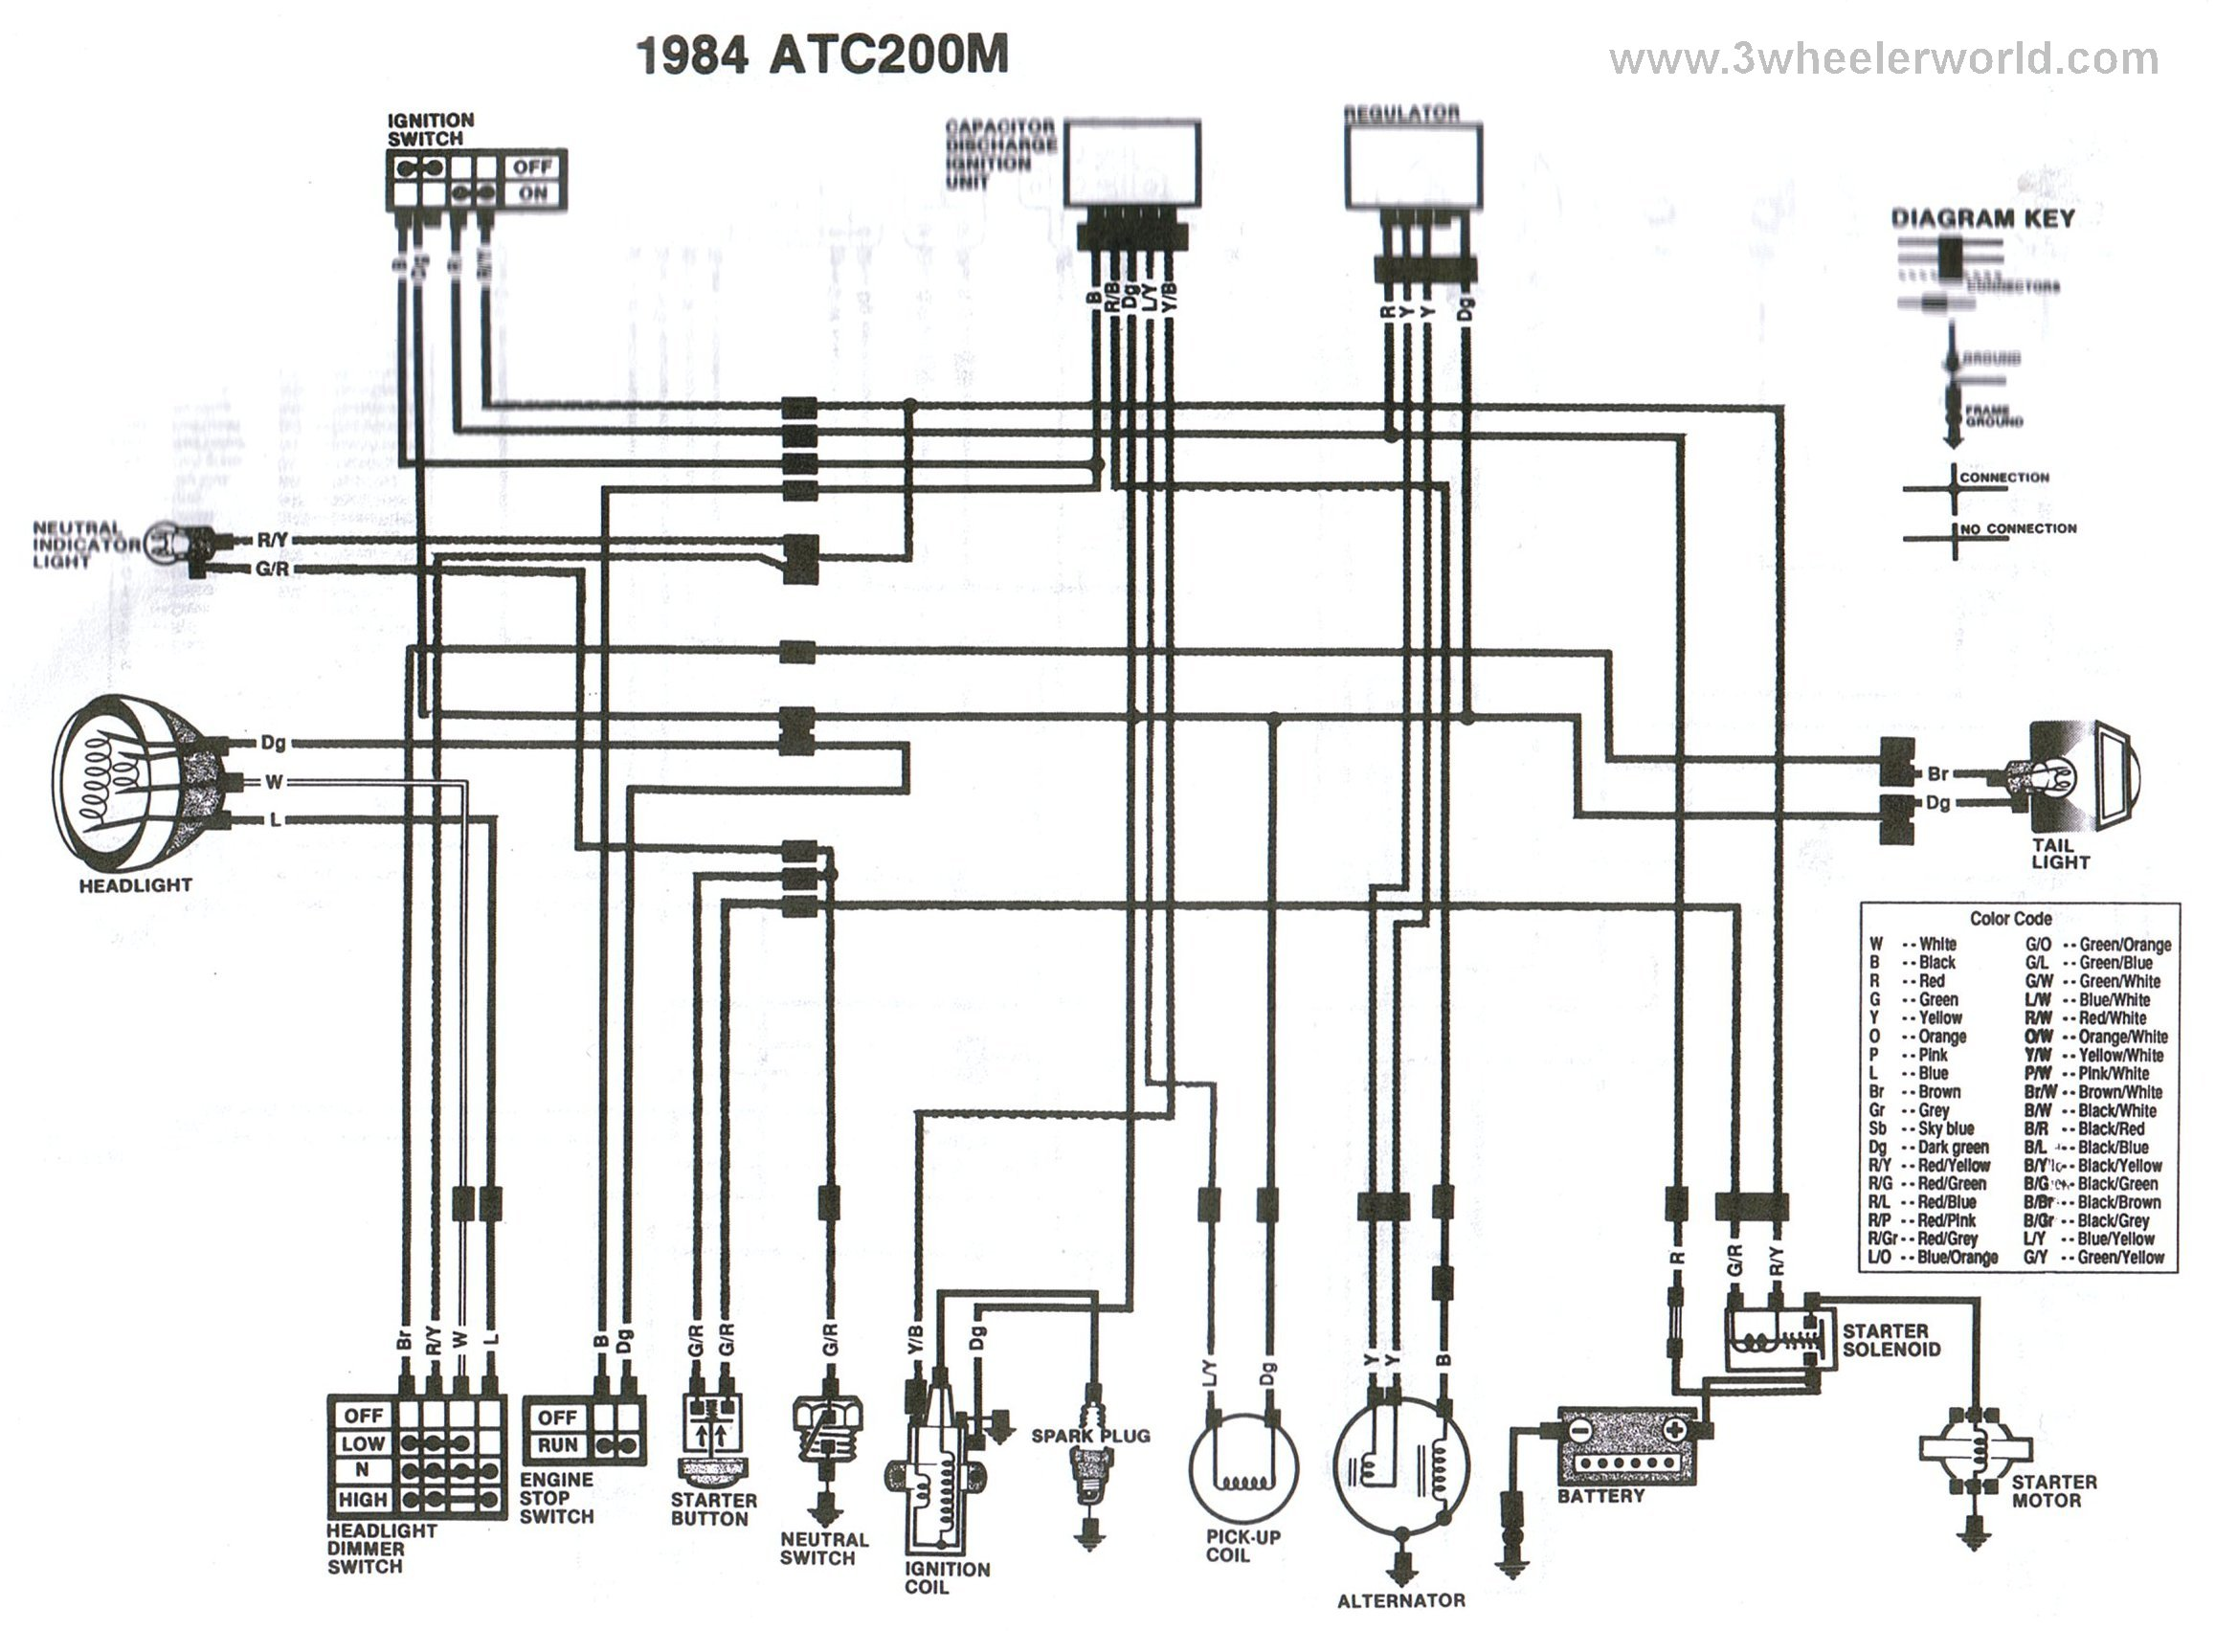 Wiring Diagram For 1984 Wiring Circuit \u2022 2012 Chrysler 200 Wiring  Diagram Kawasaki Klt 200 Wiring Diagram